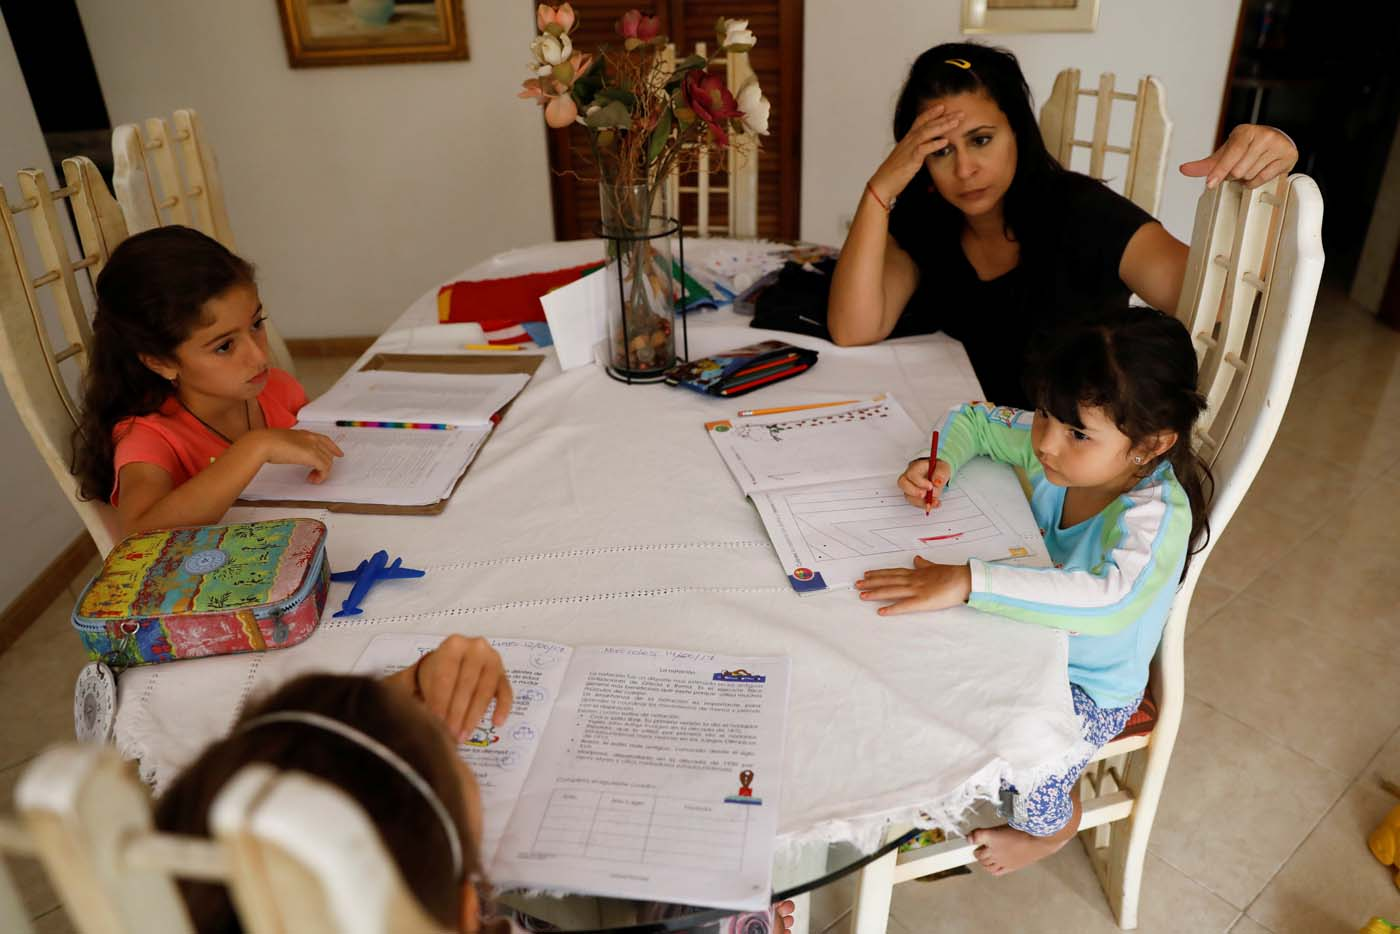 Aldrina Valenzuela (C), helps her daughter Renata (R) and her nieces Carlota (L) and Carmen, to do the homework at her mother's house on a day of protests in Caracas, Venezuela June 14, 2017. Picture taken June 14, 2017. REUTERS/Carlos Garcia Rawlins